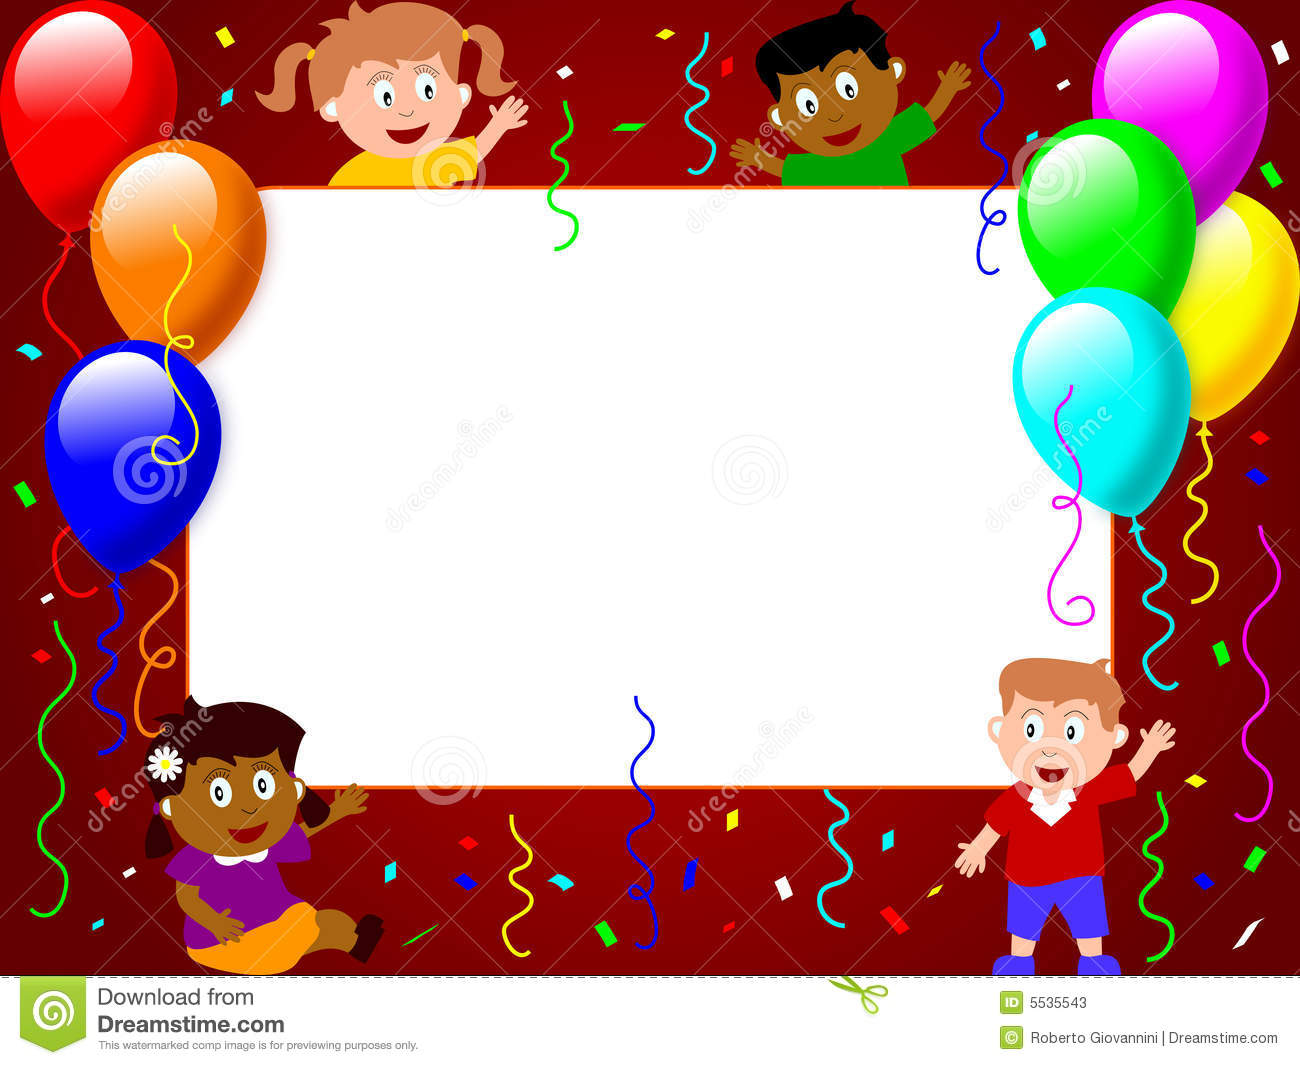 Carnival Party Invitation as nice invitations layout